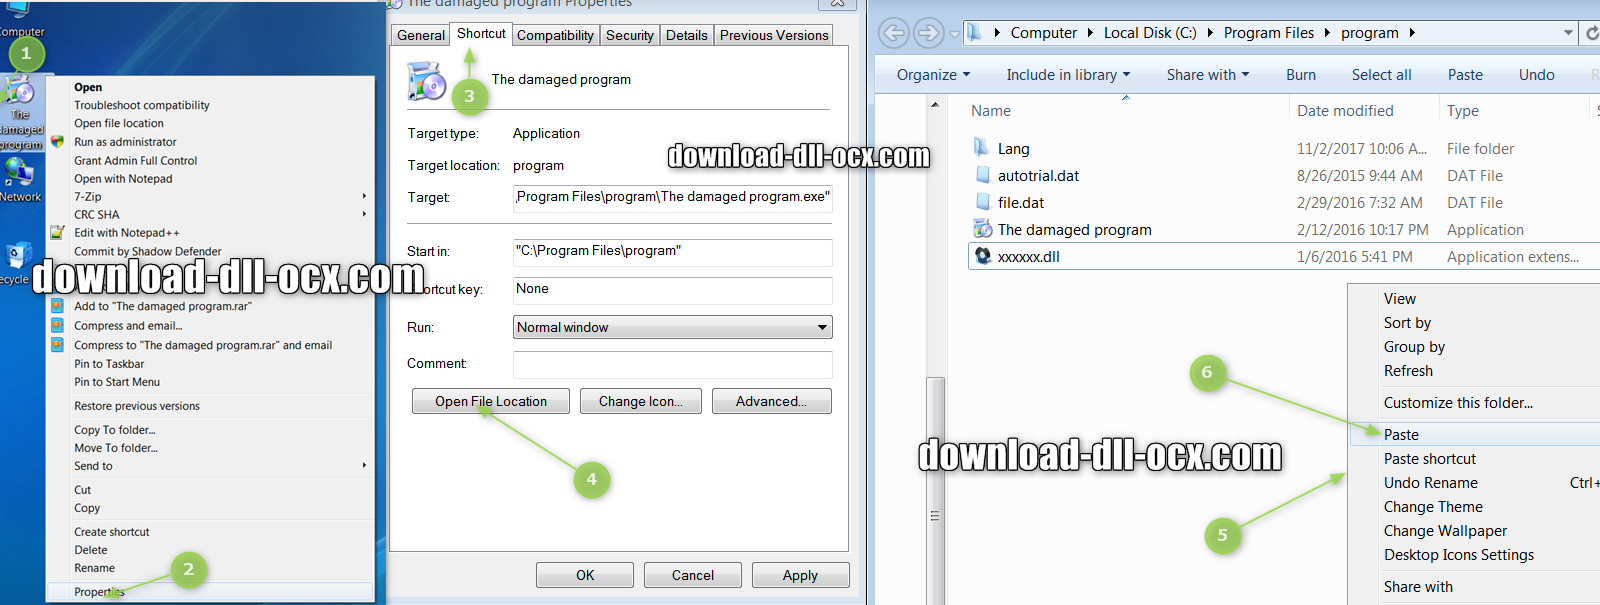 how to install ouniansi.dll file? for fix missing